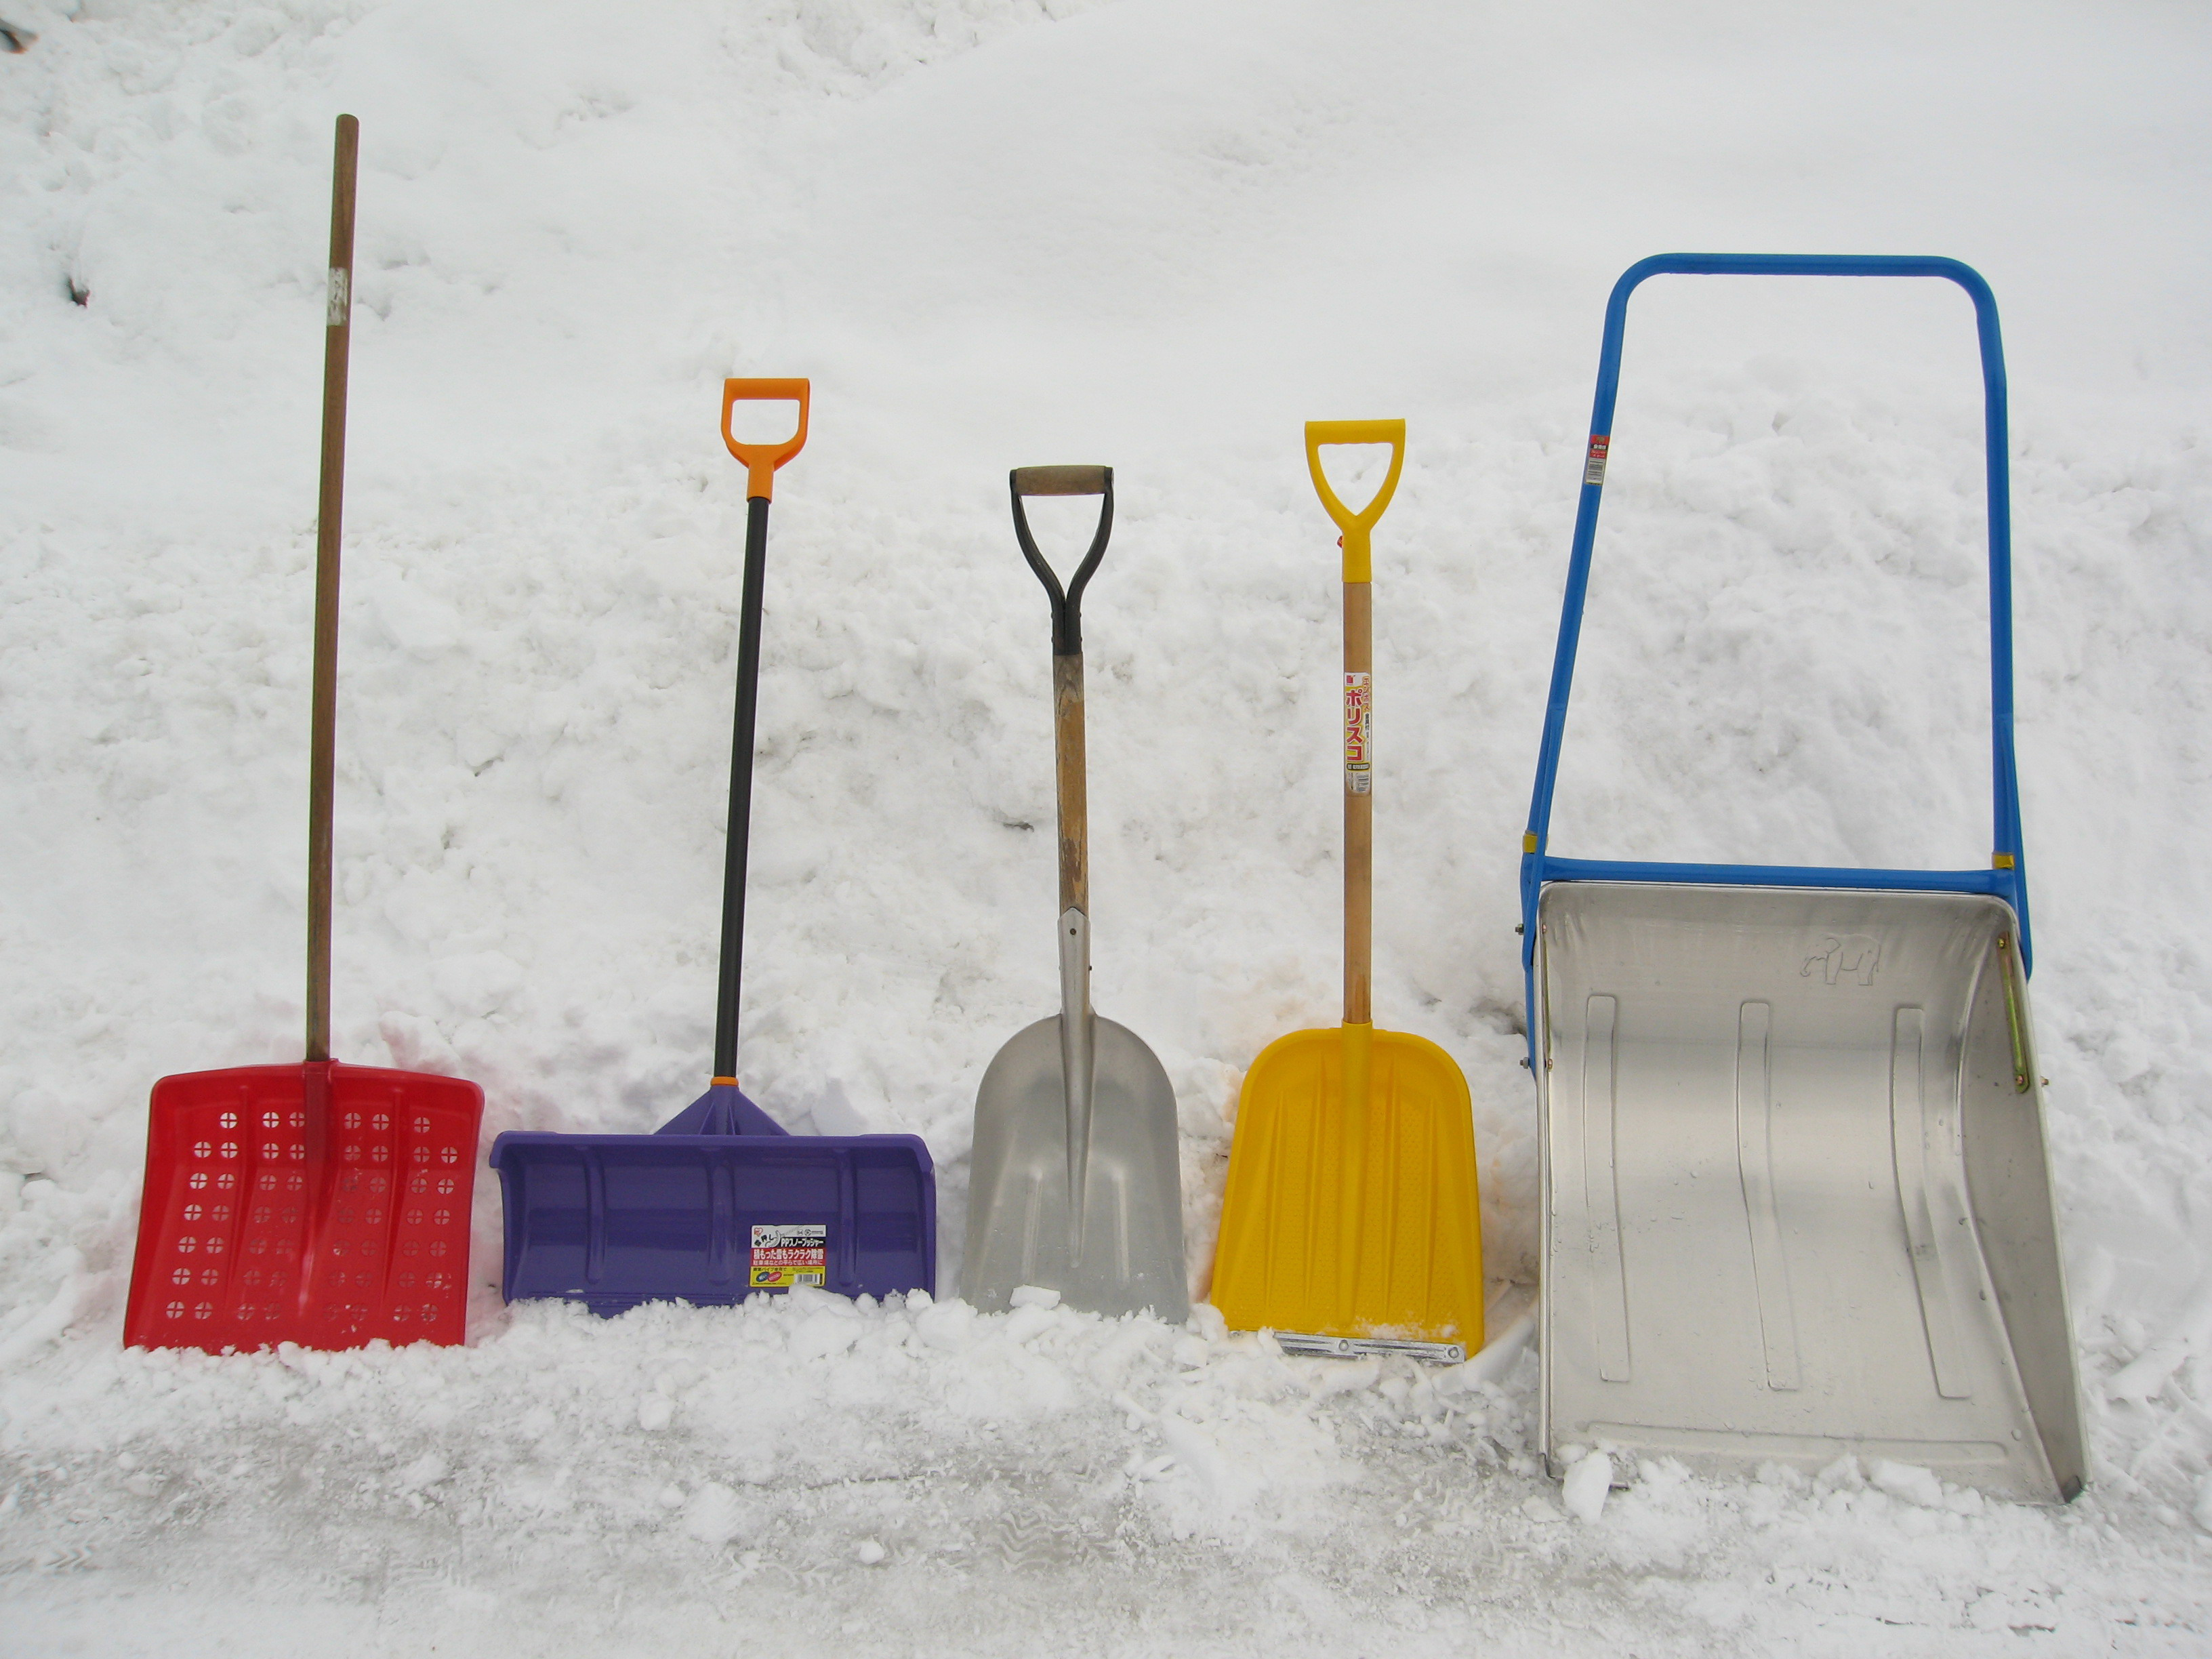 There are a variety of snow shovels available today.